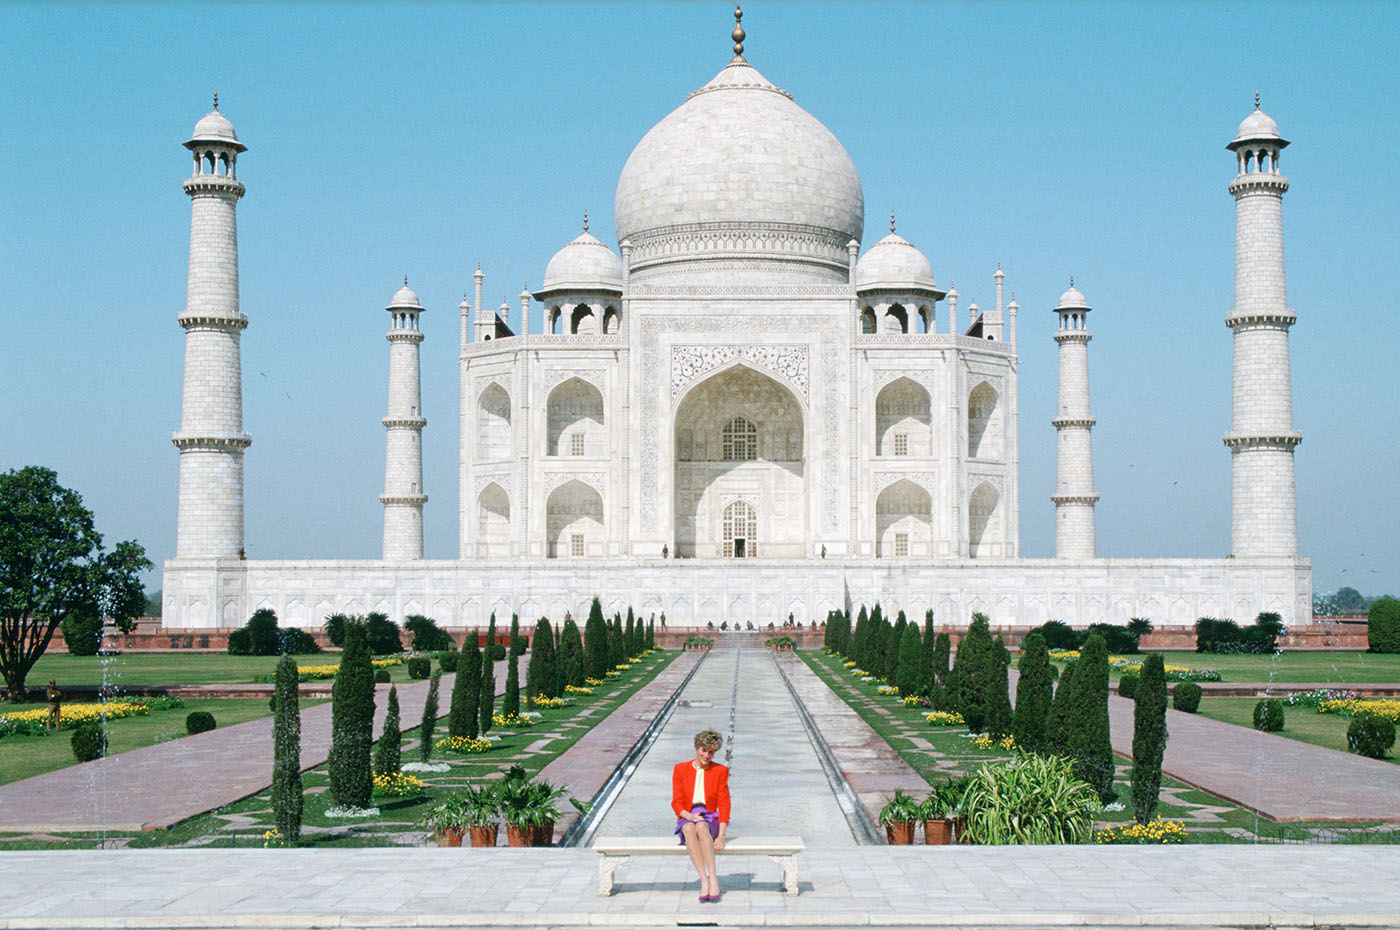 Diana Princess of Wales sitting in front of the Taj Mahal during a visit to India, 1992. (Credit: Tim Graham/Getty Images)